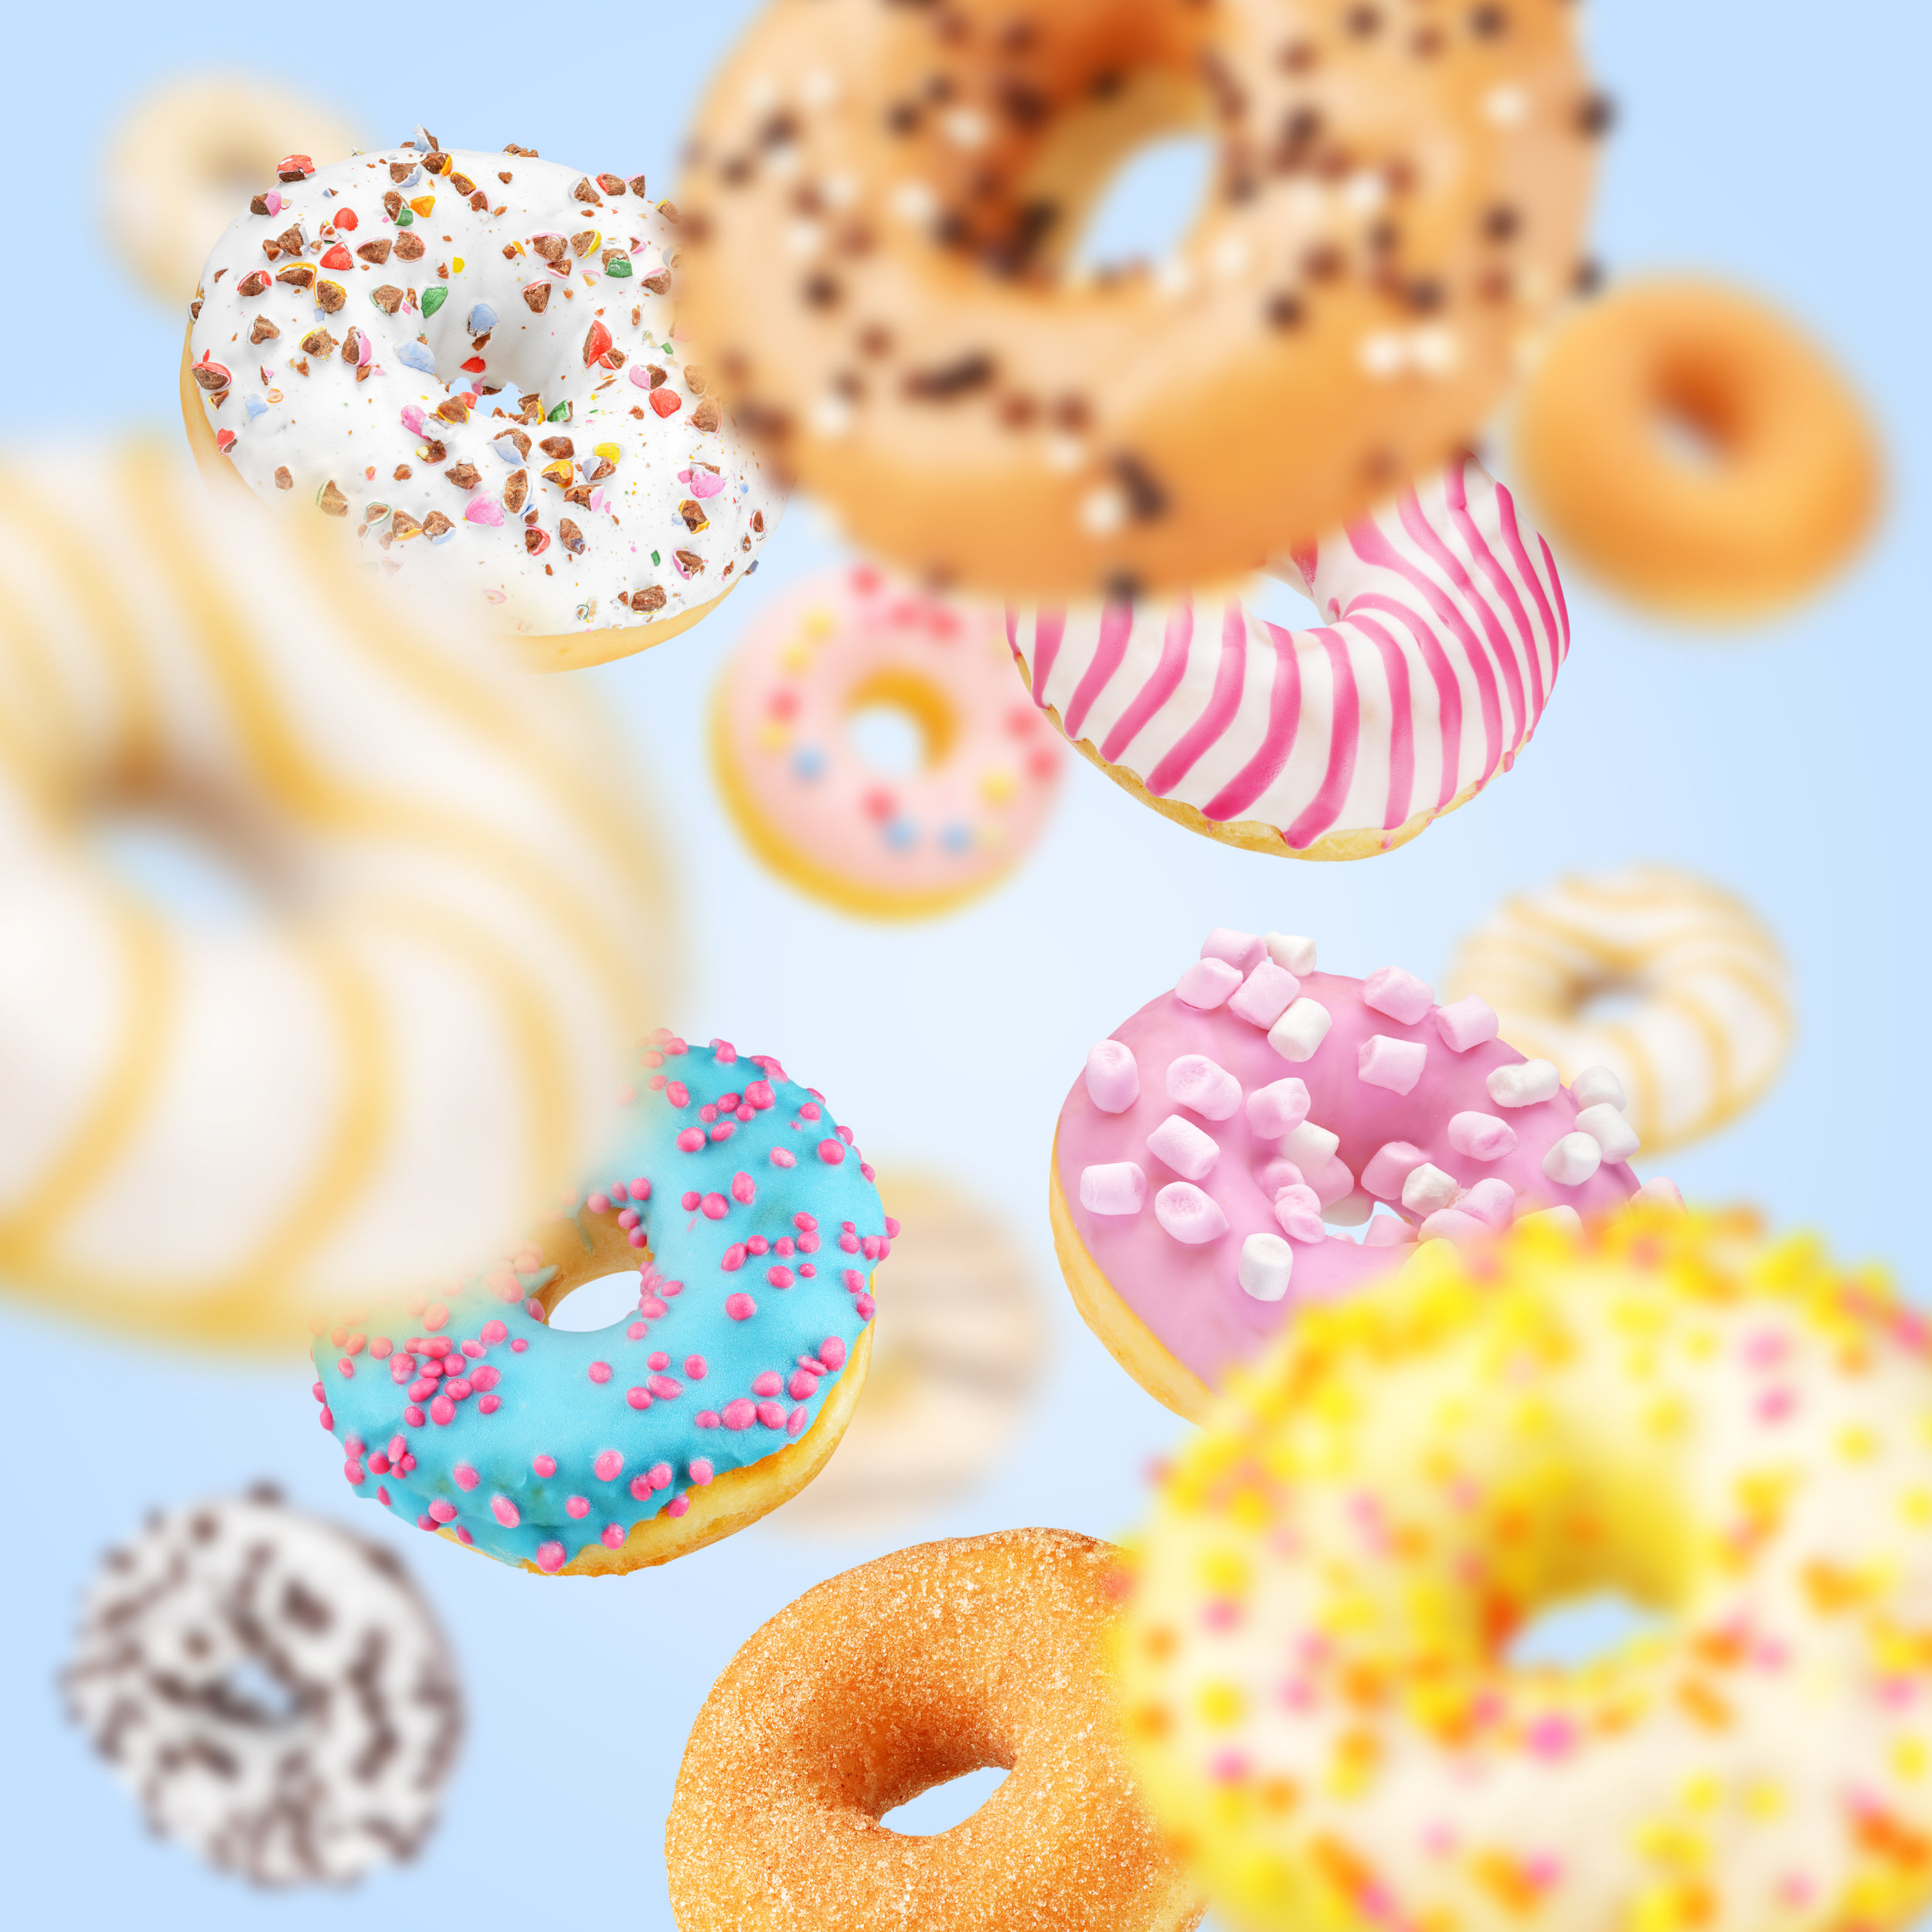 3.2 Sugar vs. fat addiction: Is there a difference? -